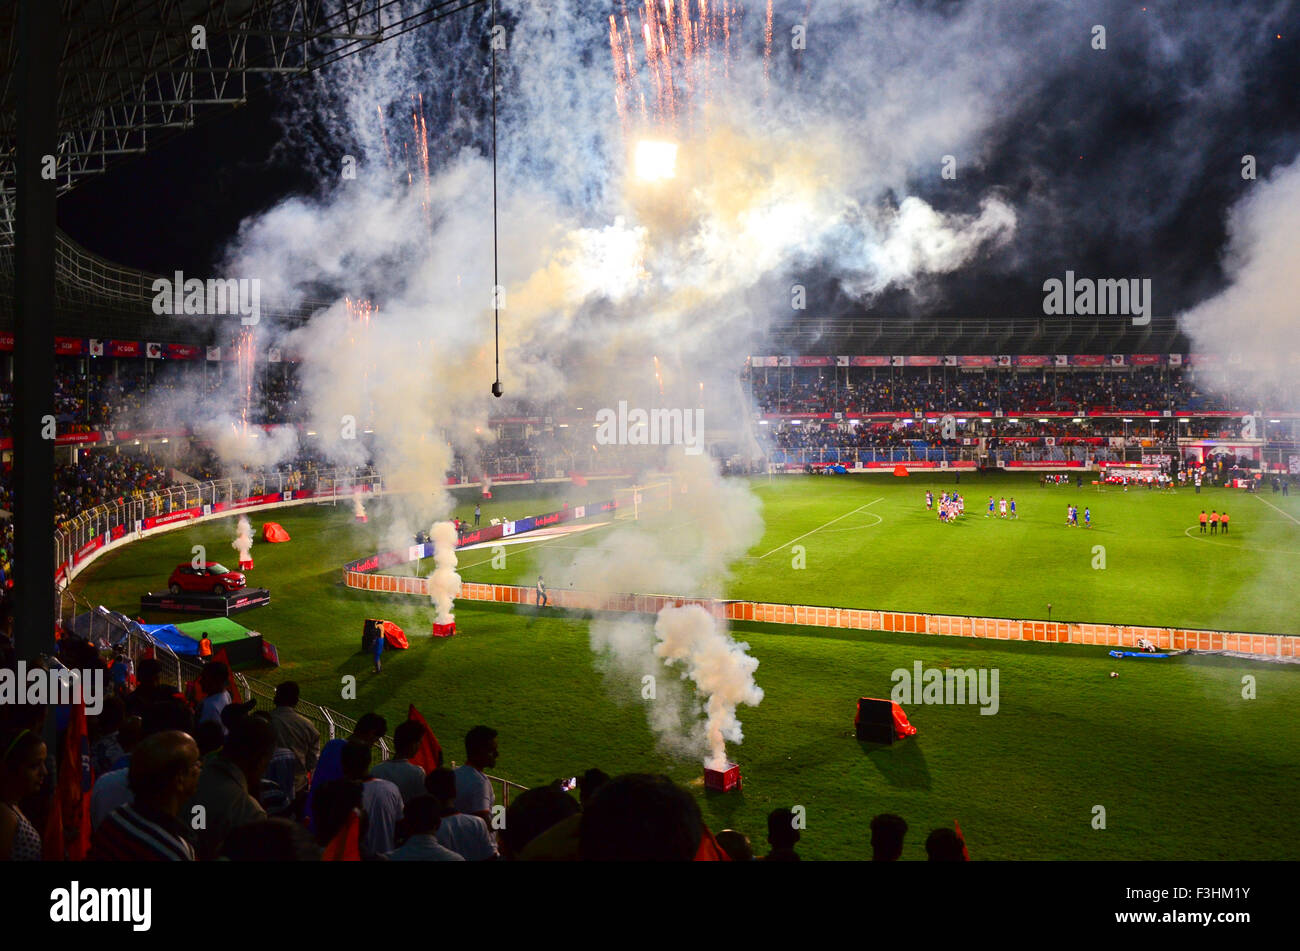 Fireworks after the final whistle in Indian Super League (ISL) encounter of FC Goa against Atlético de Kolkata - Stock Image